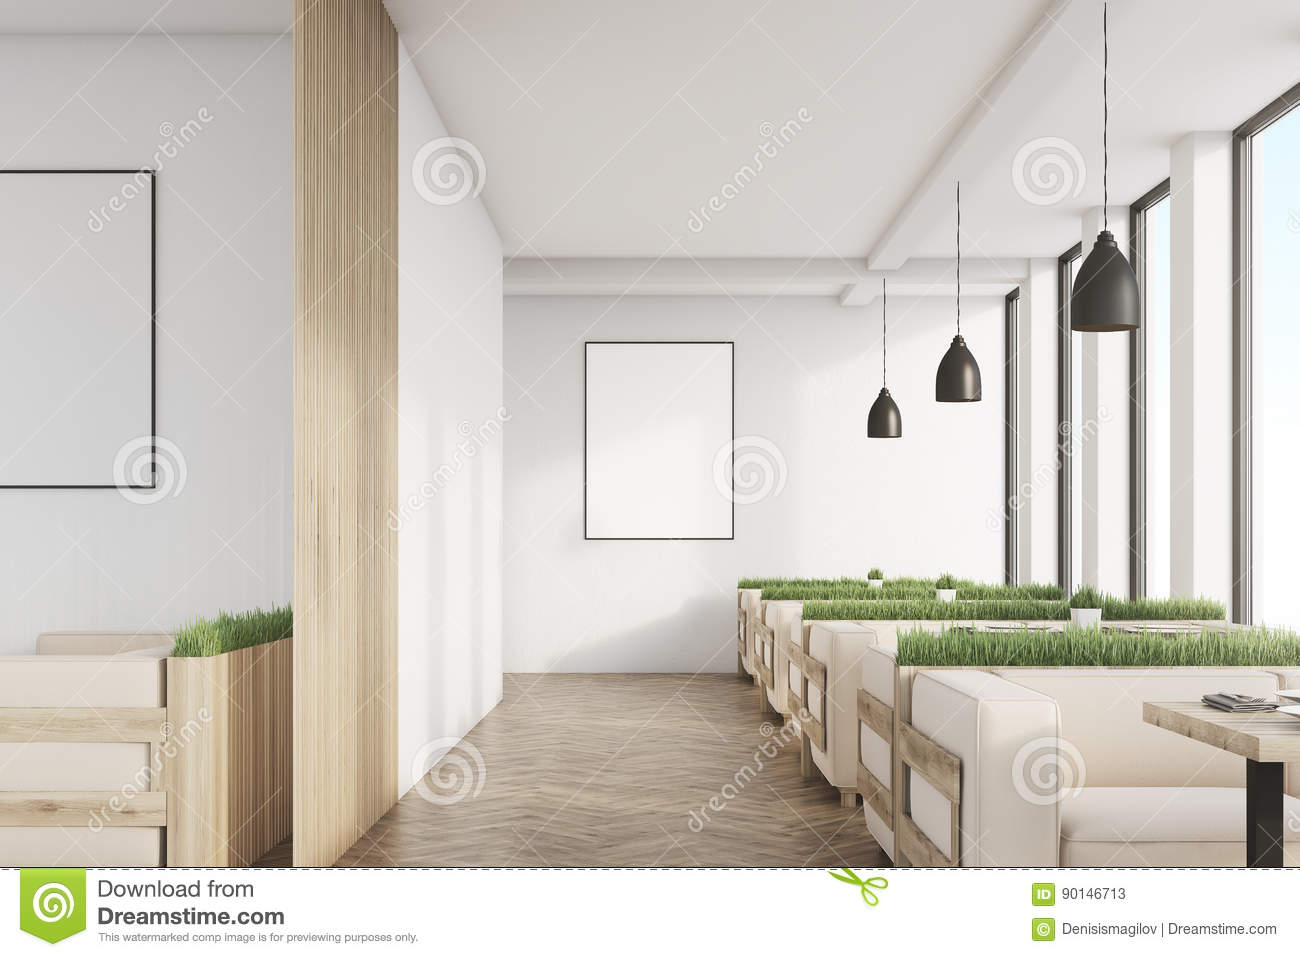 grass cafe with posters and light wood sofas stock illustration